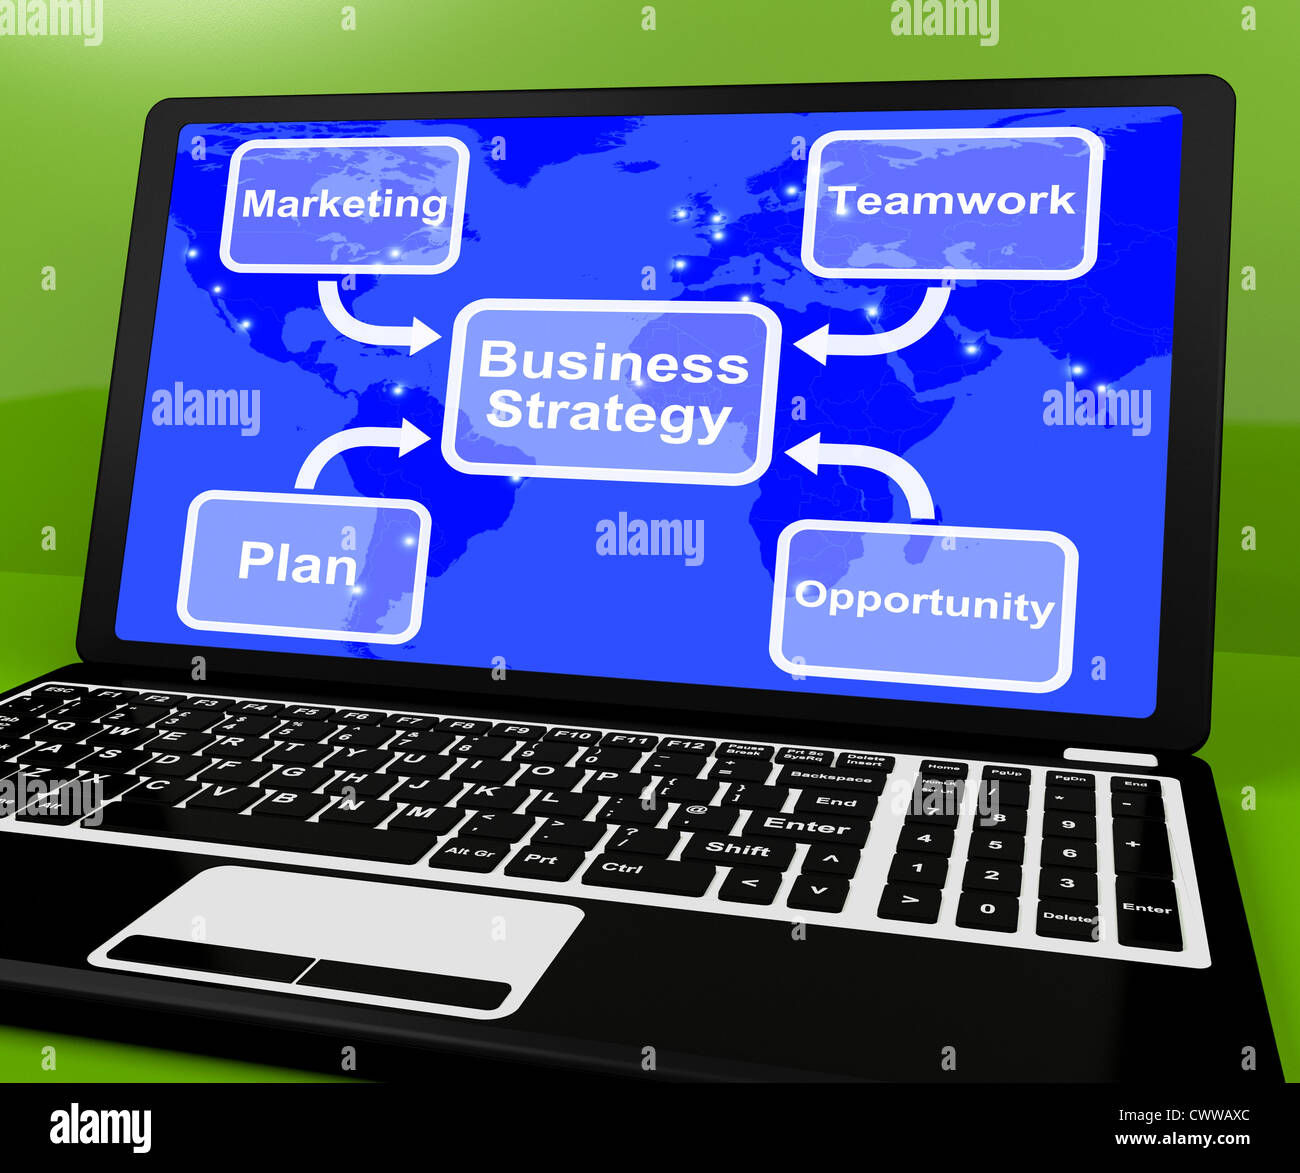 hight resolution of business strategy diagram on computer shows teamwork